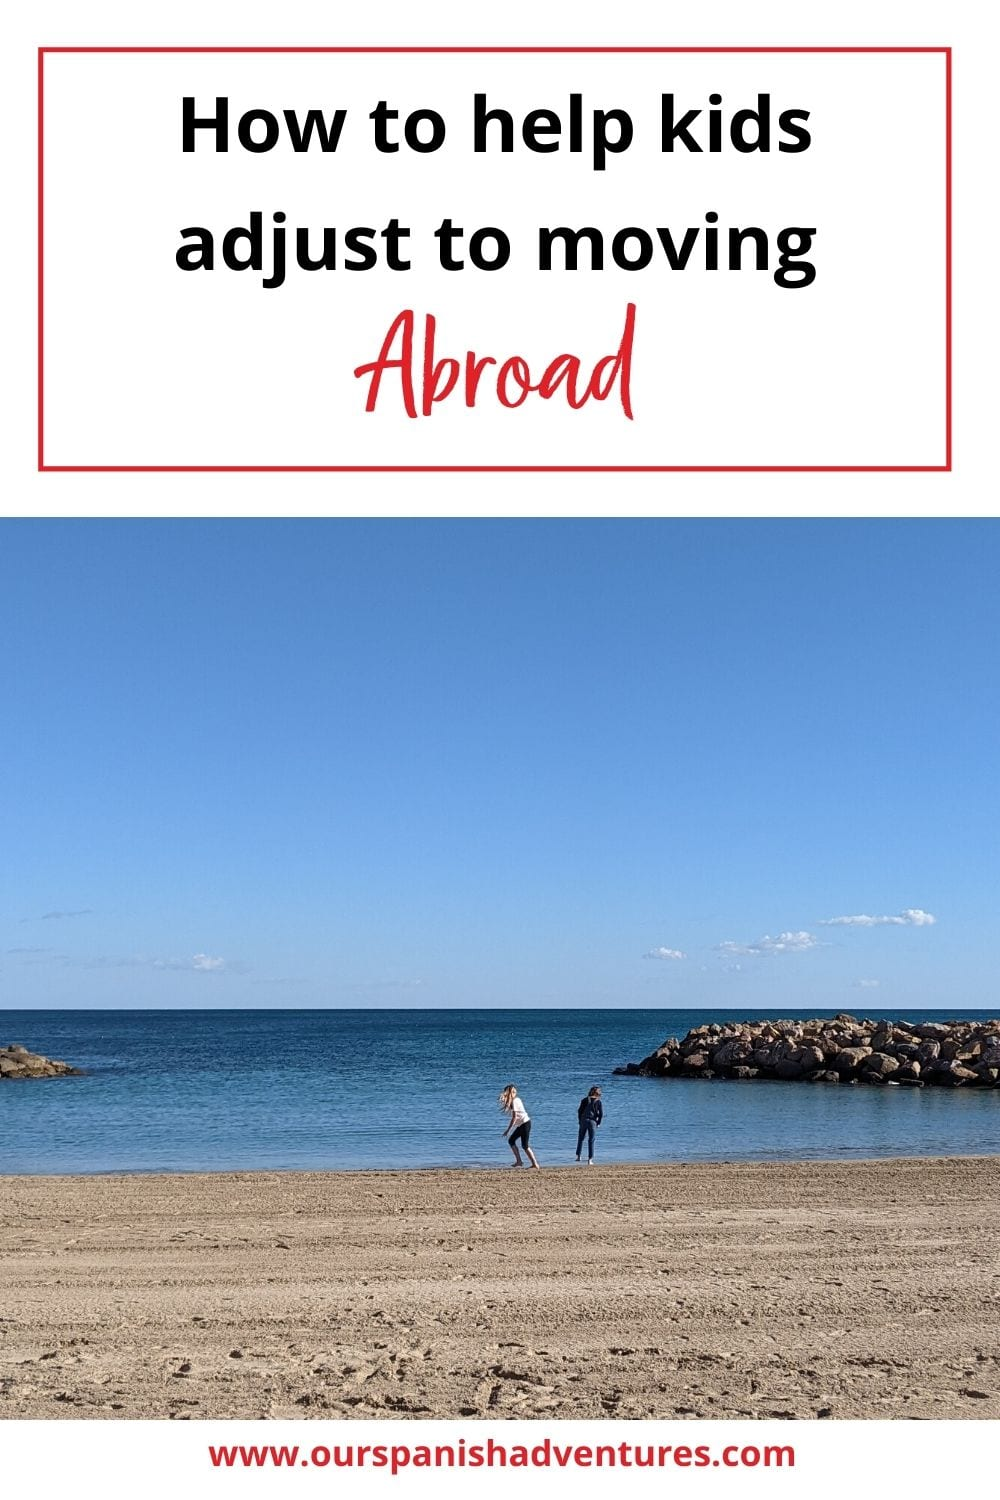 How to help kids adjust to moving abroad | Our Spanish Adventures